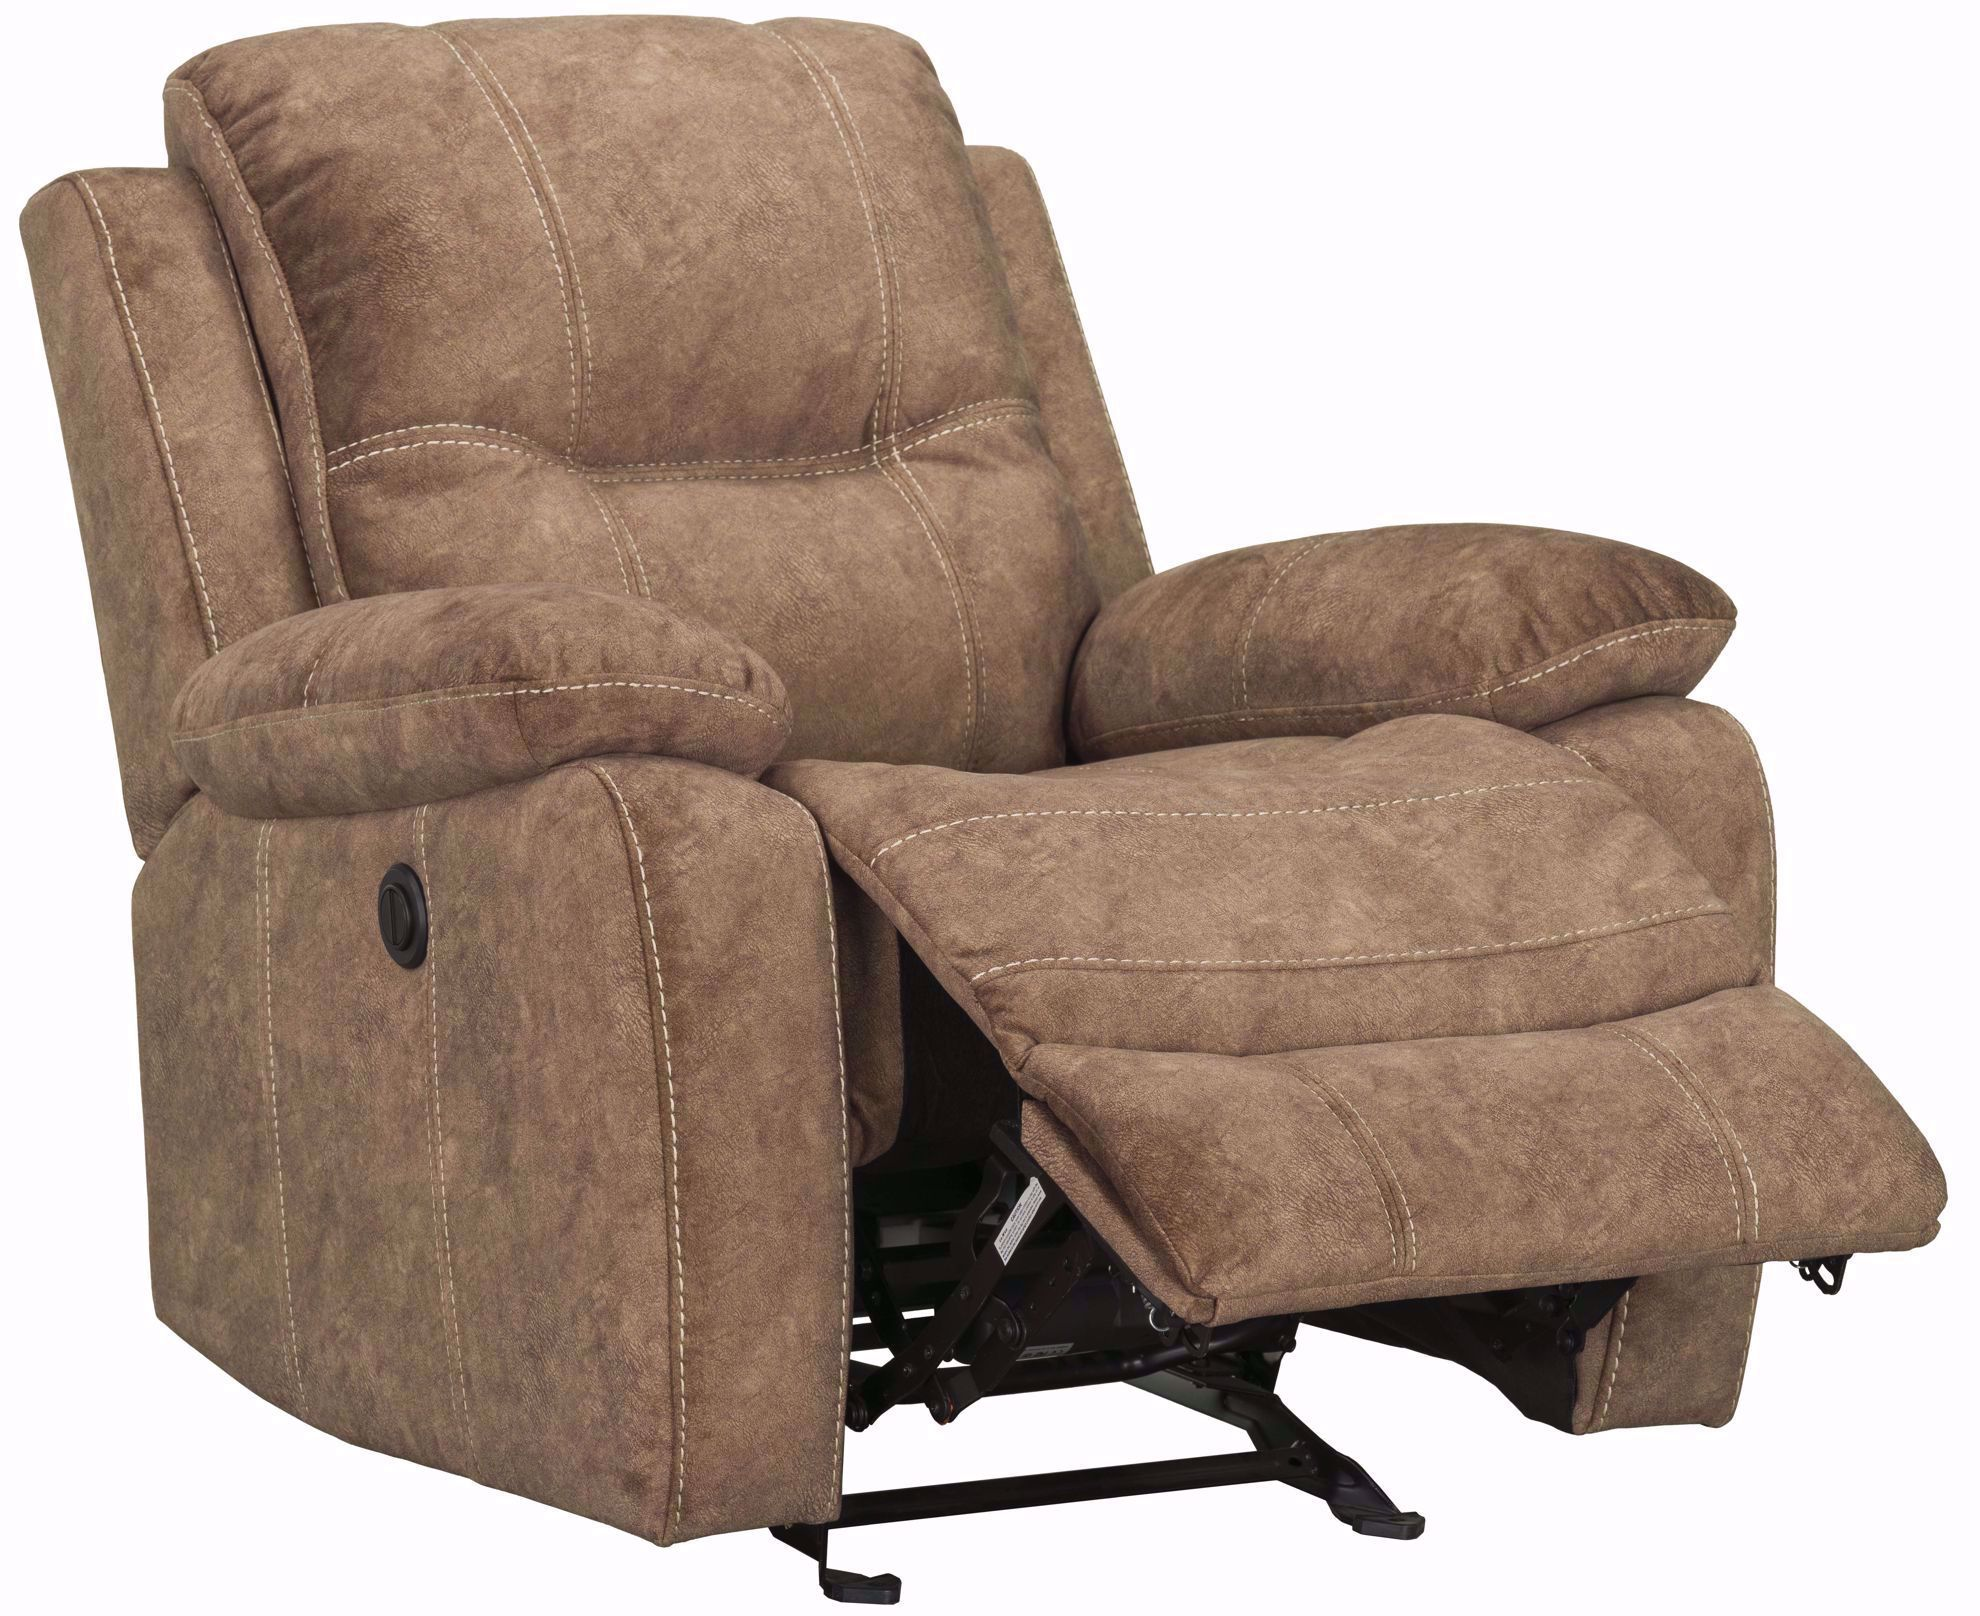 Picture of Emerson Power Glider Recliner